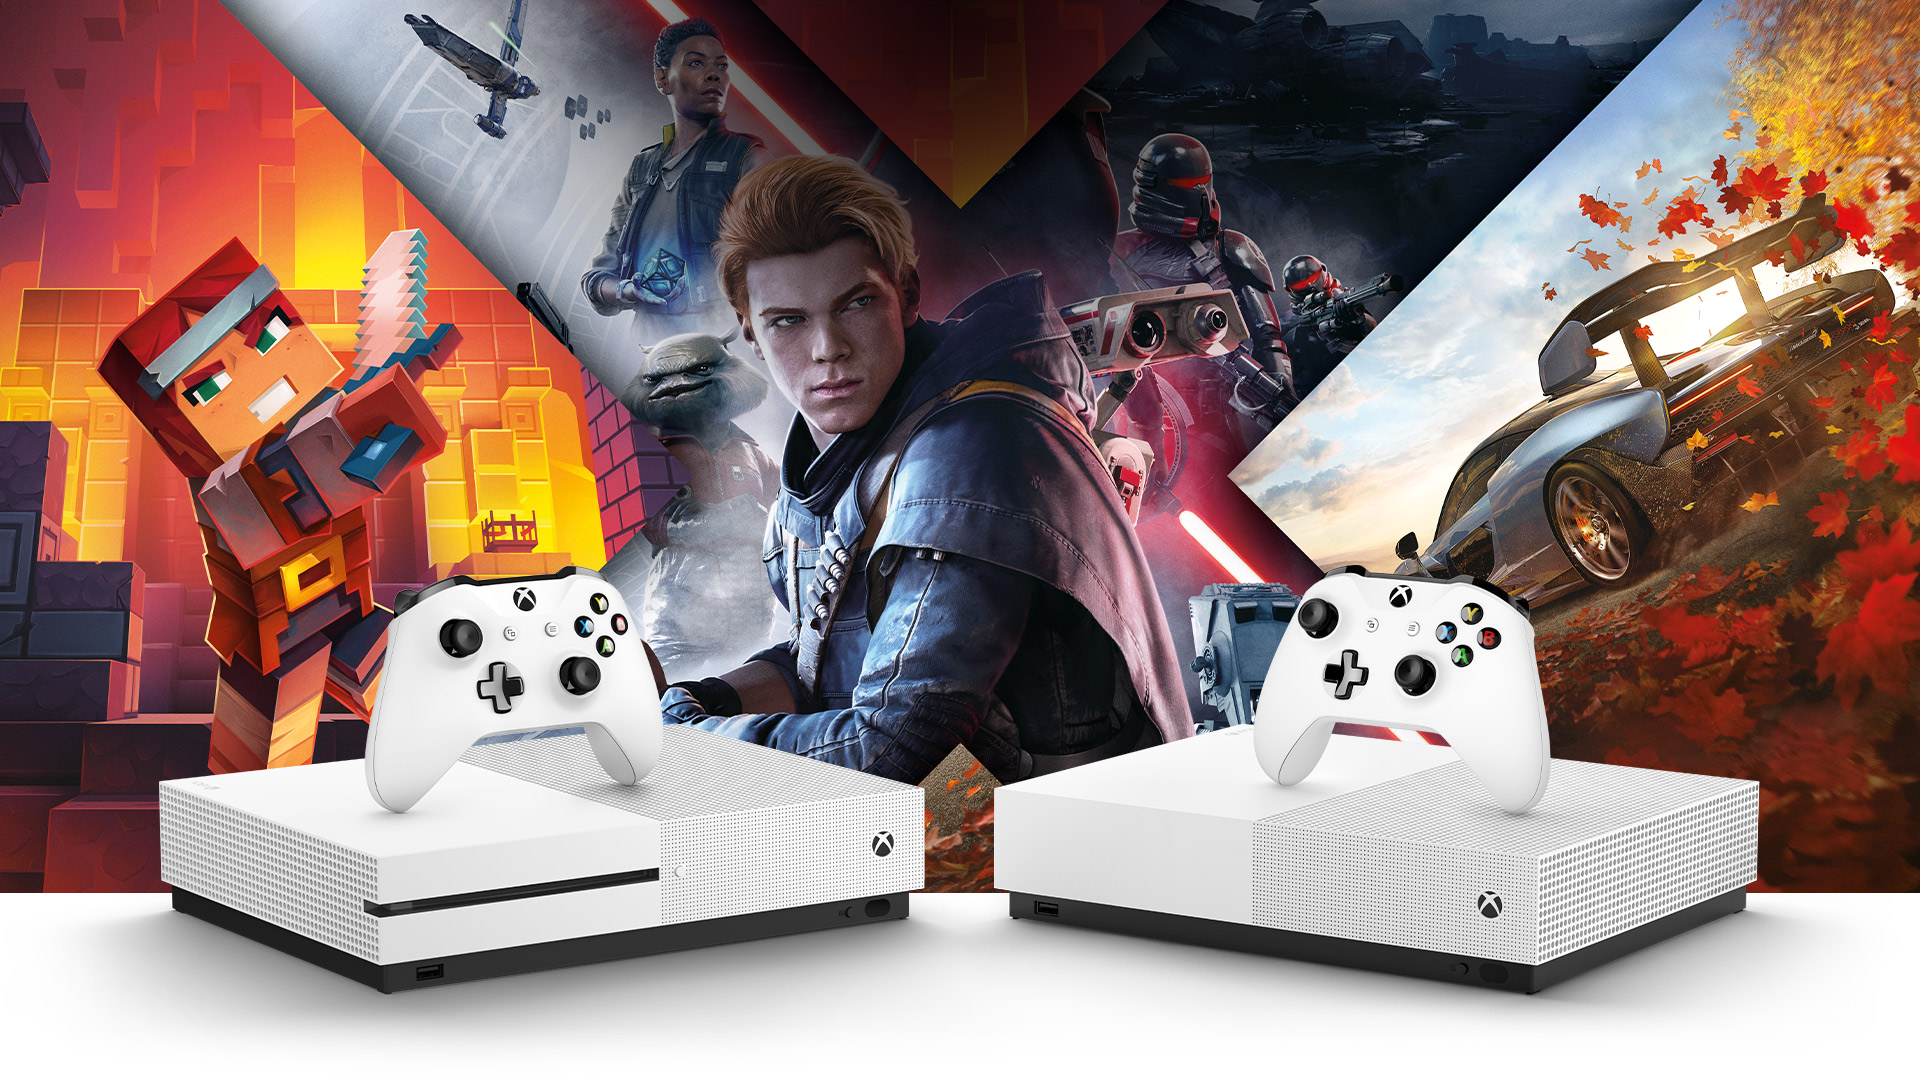 Vista frontal da Xbox One S e da Xbox One S All Digital Edition rodeadas por arte do Minecraft, Forza Horizon 4 e Star Wars Jedi Fallen Order